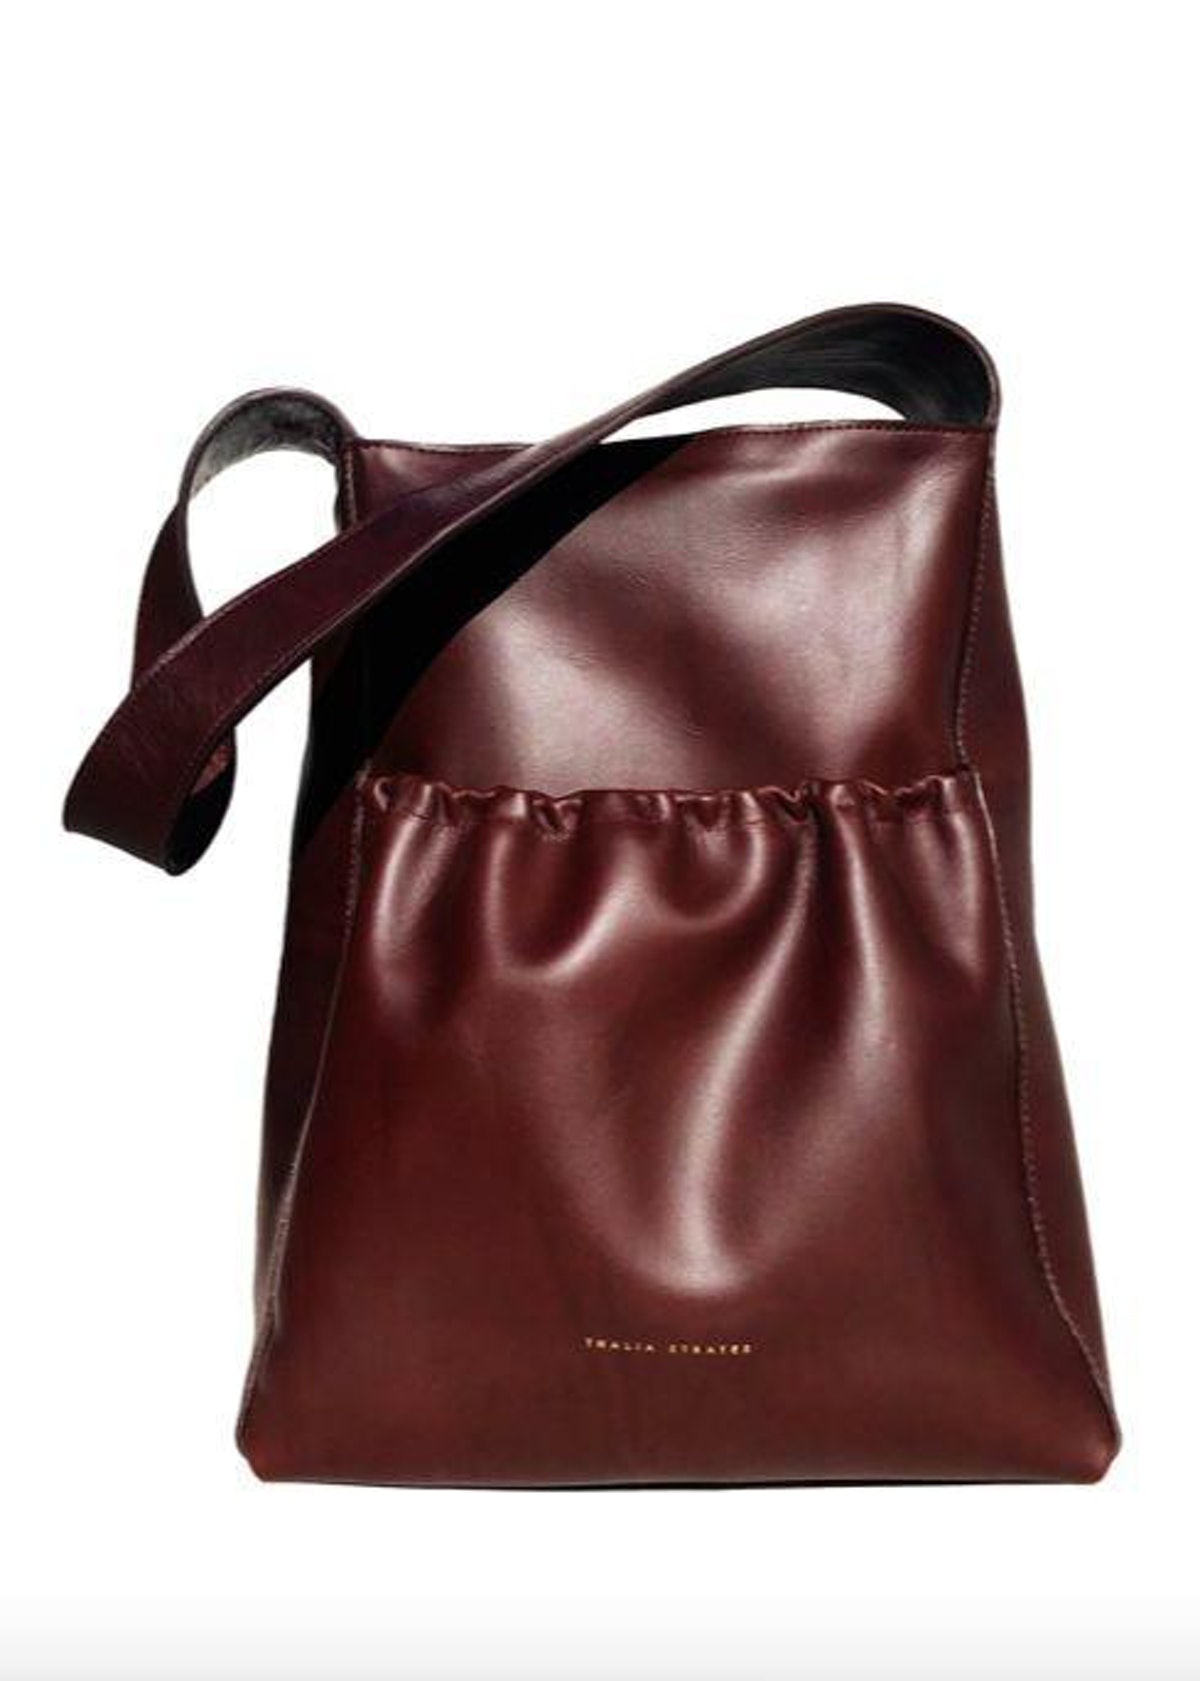 Burgundy Raphael bag from Thalia Strates, available to shop on The Folklore.